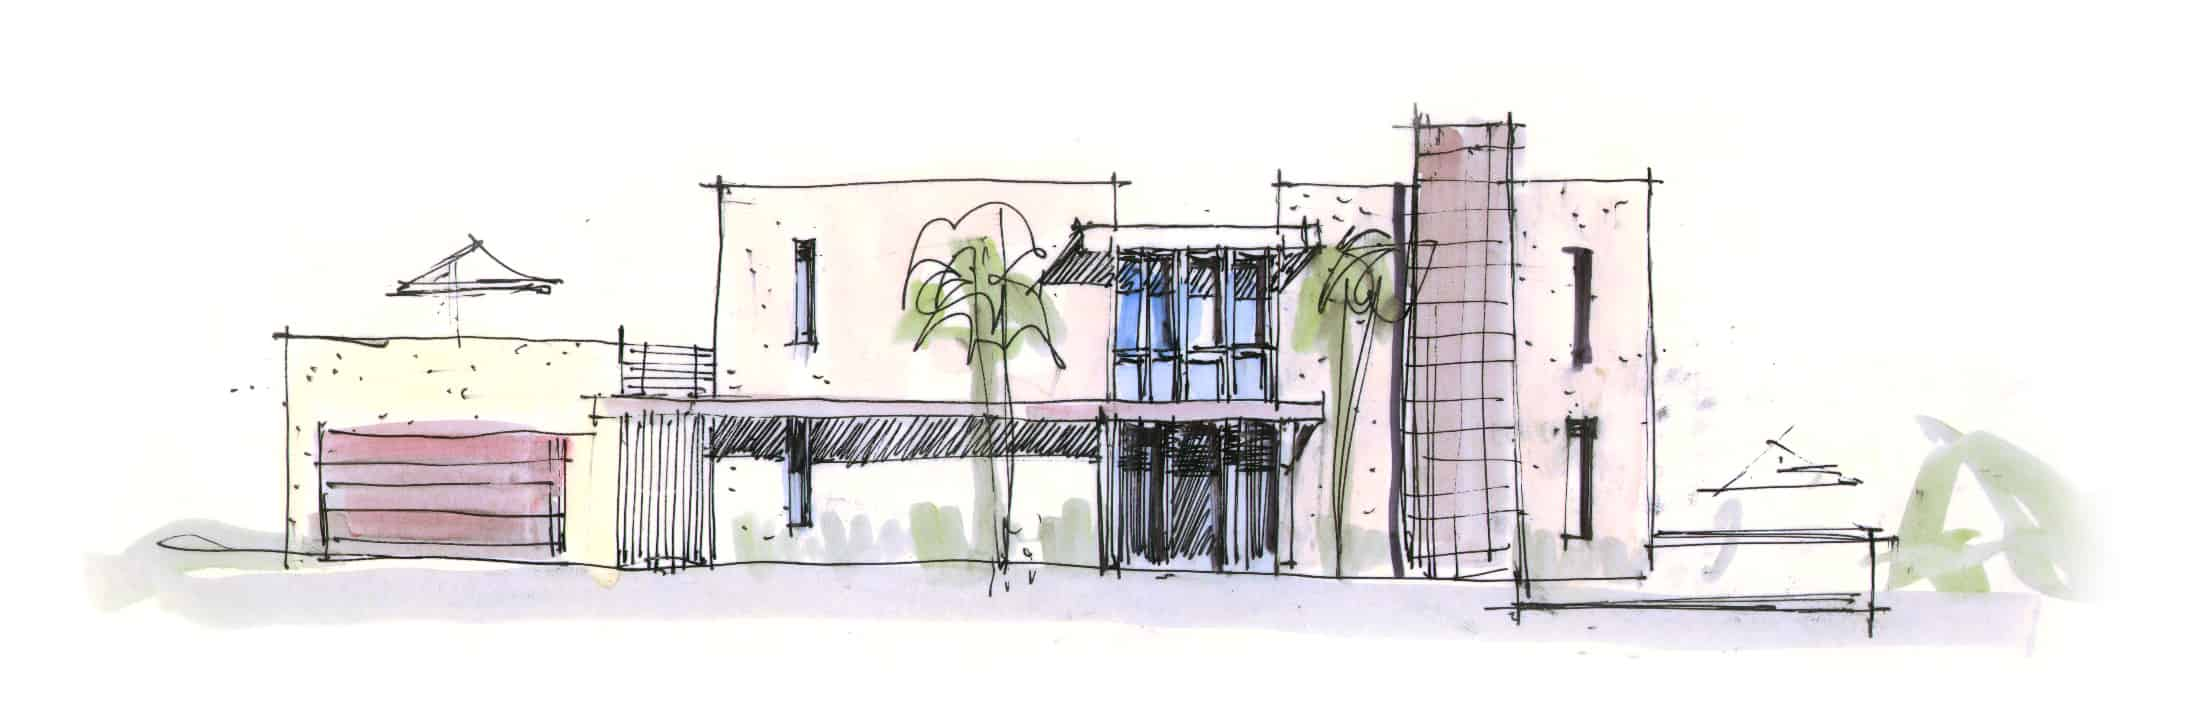 0315_Riviera_elevation sketch 1